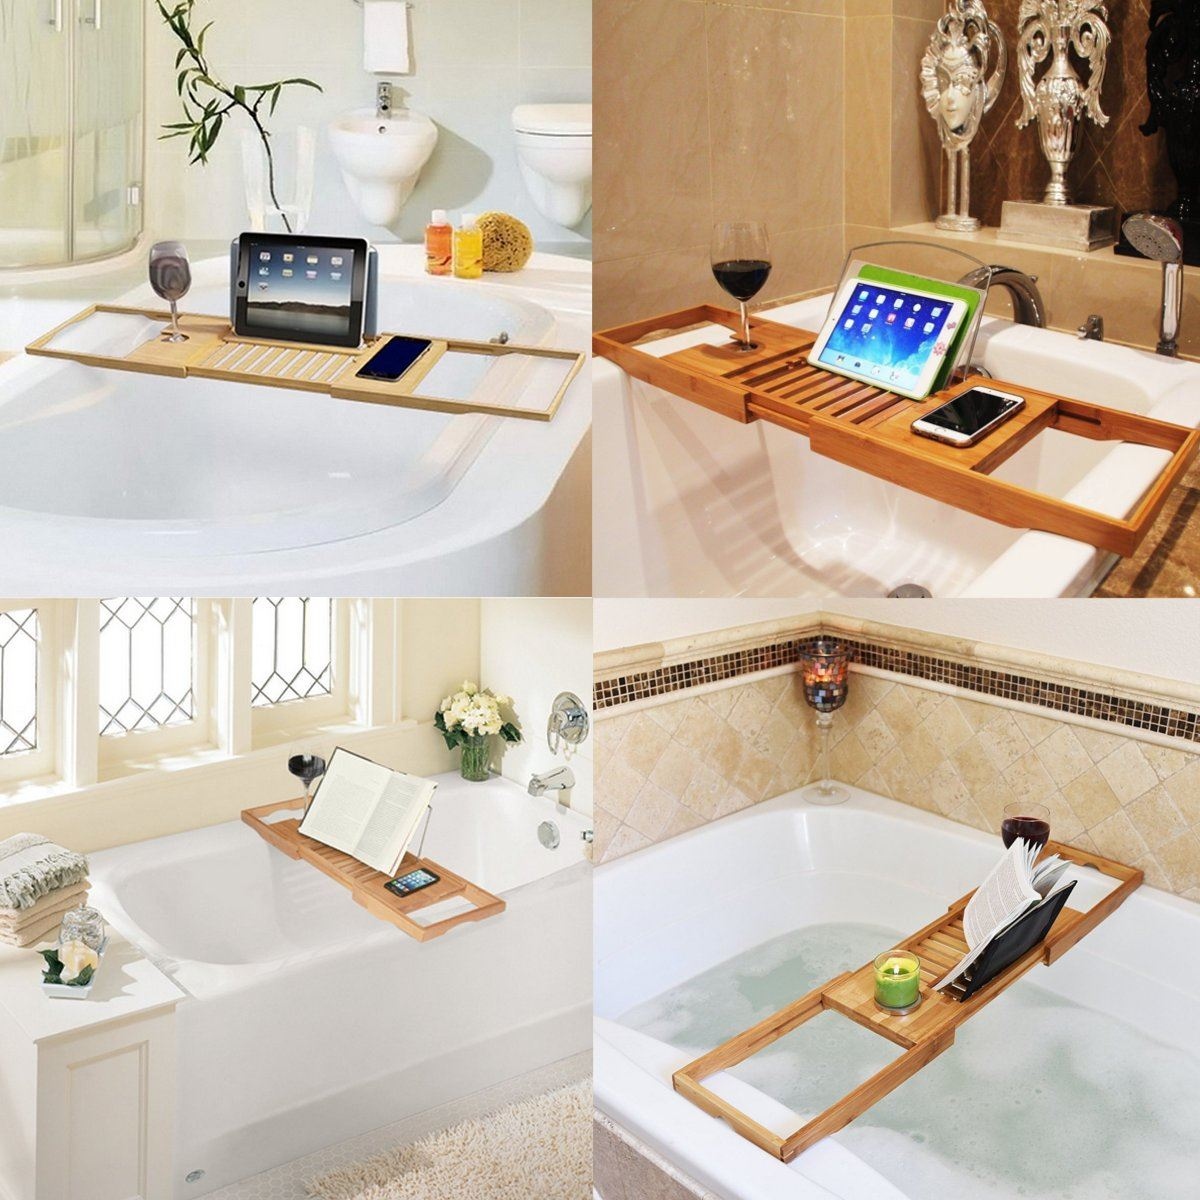 Wooden Adjustable Bath Tub Shower Tray Holder Sundries Organizer ...